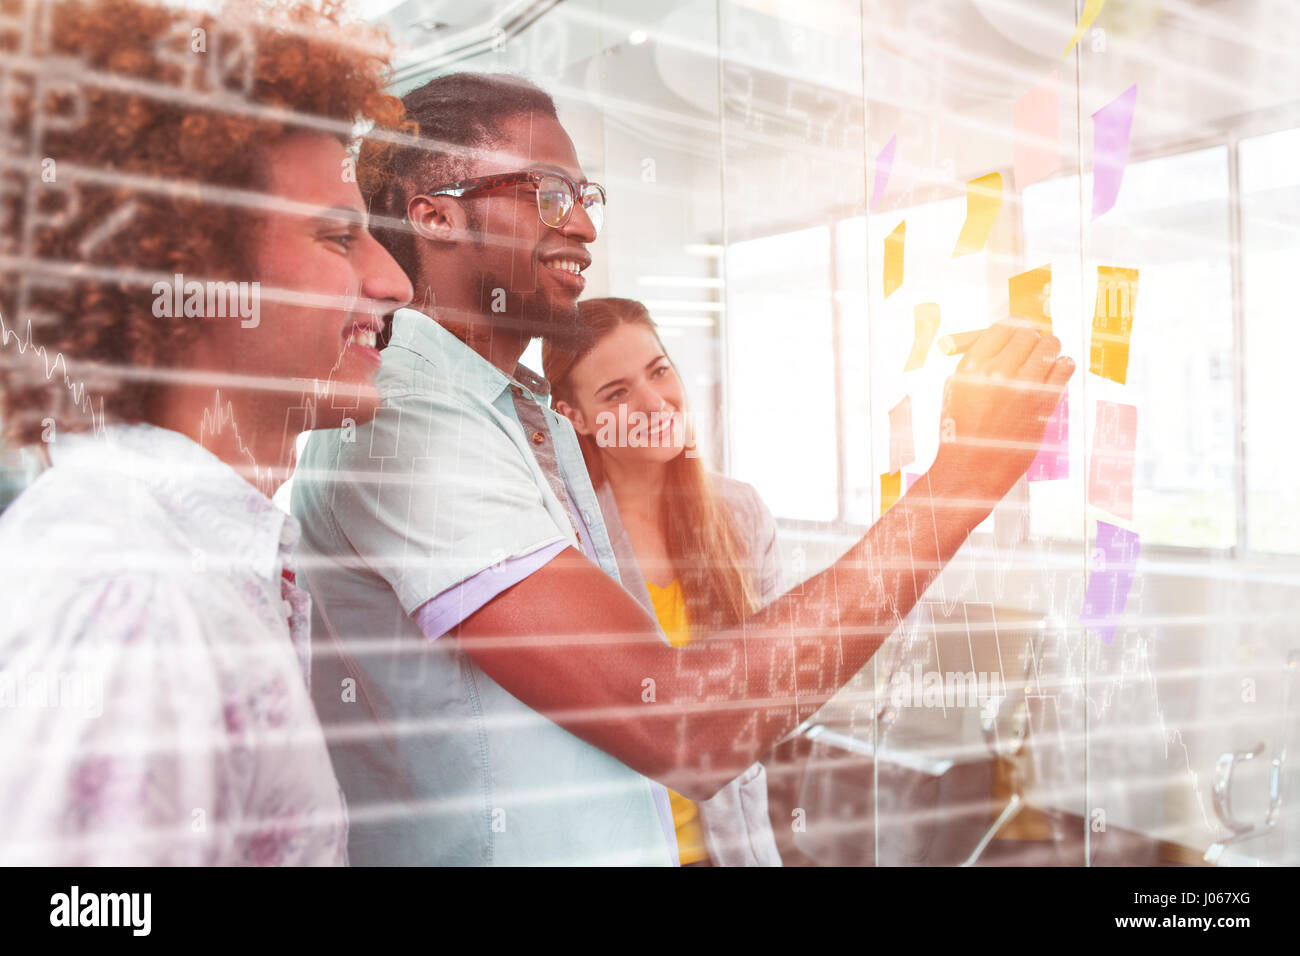 Stocks and shares against creative bussiness people discussing over adhesive notes - Stock Image